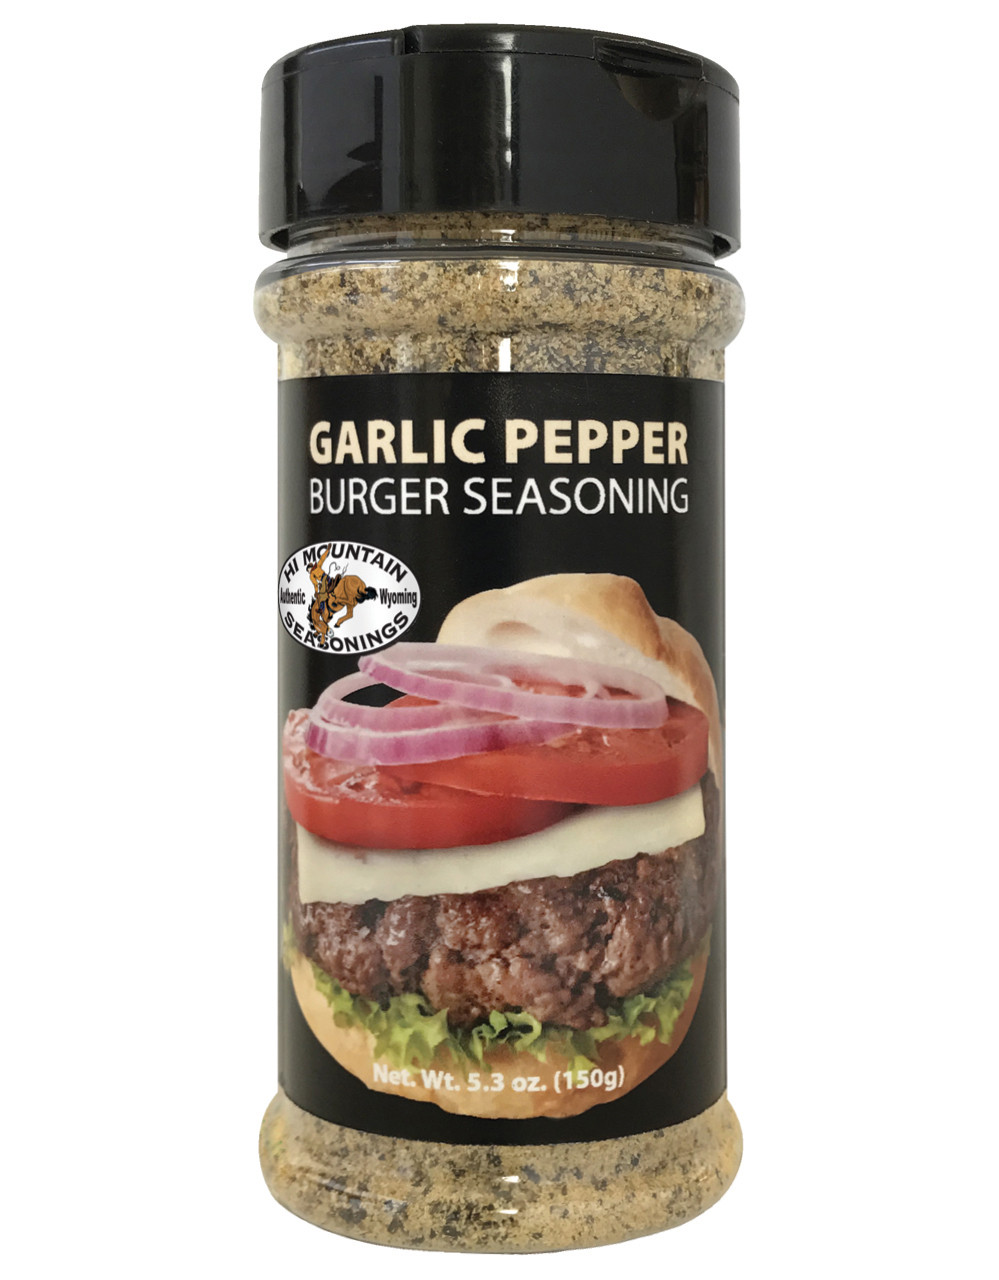 Garlic Pepper Burger Seasoning